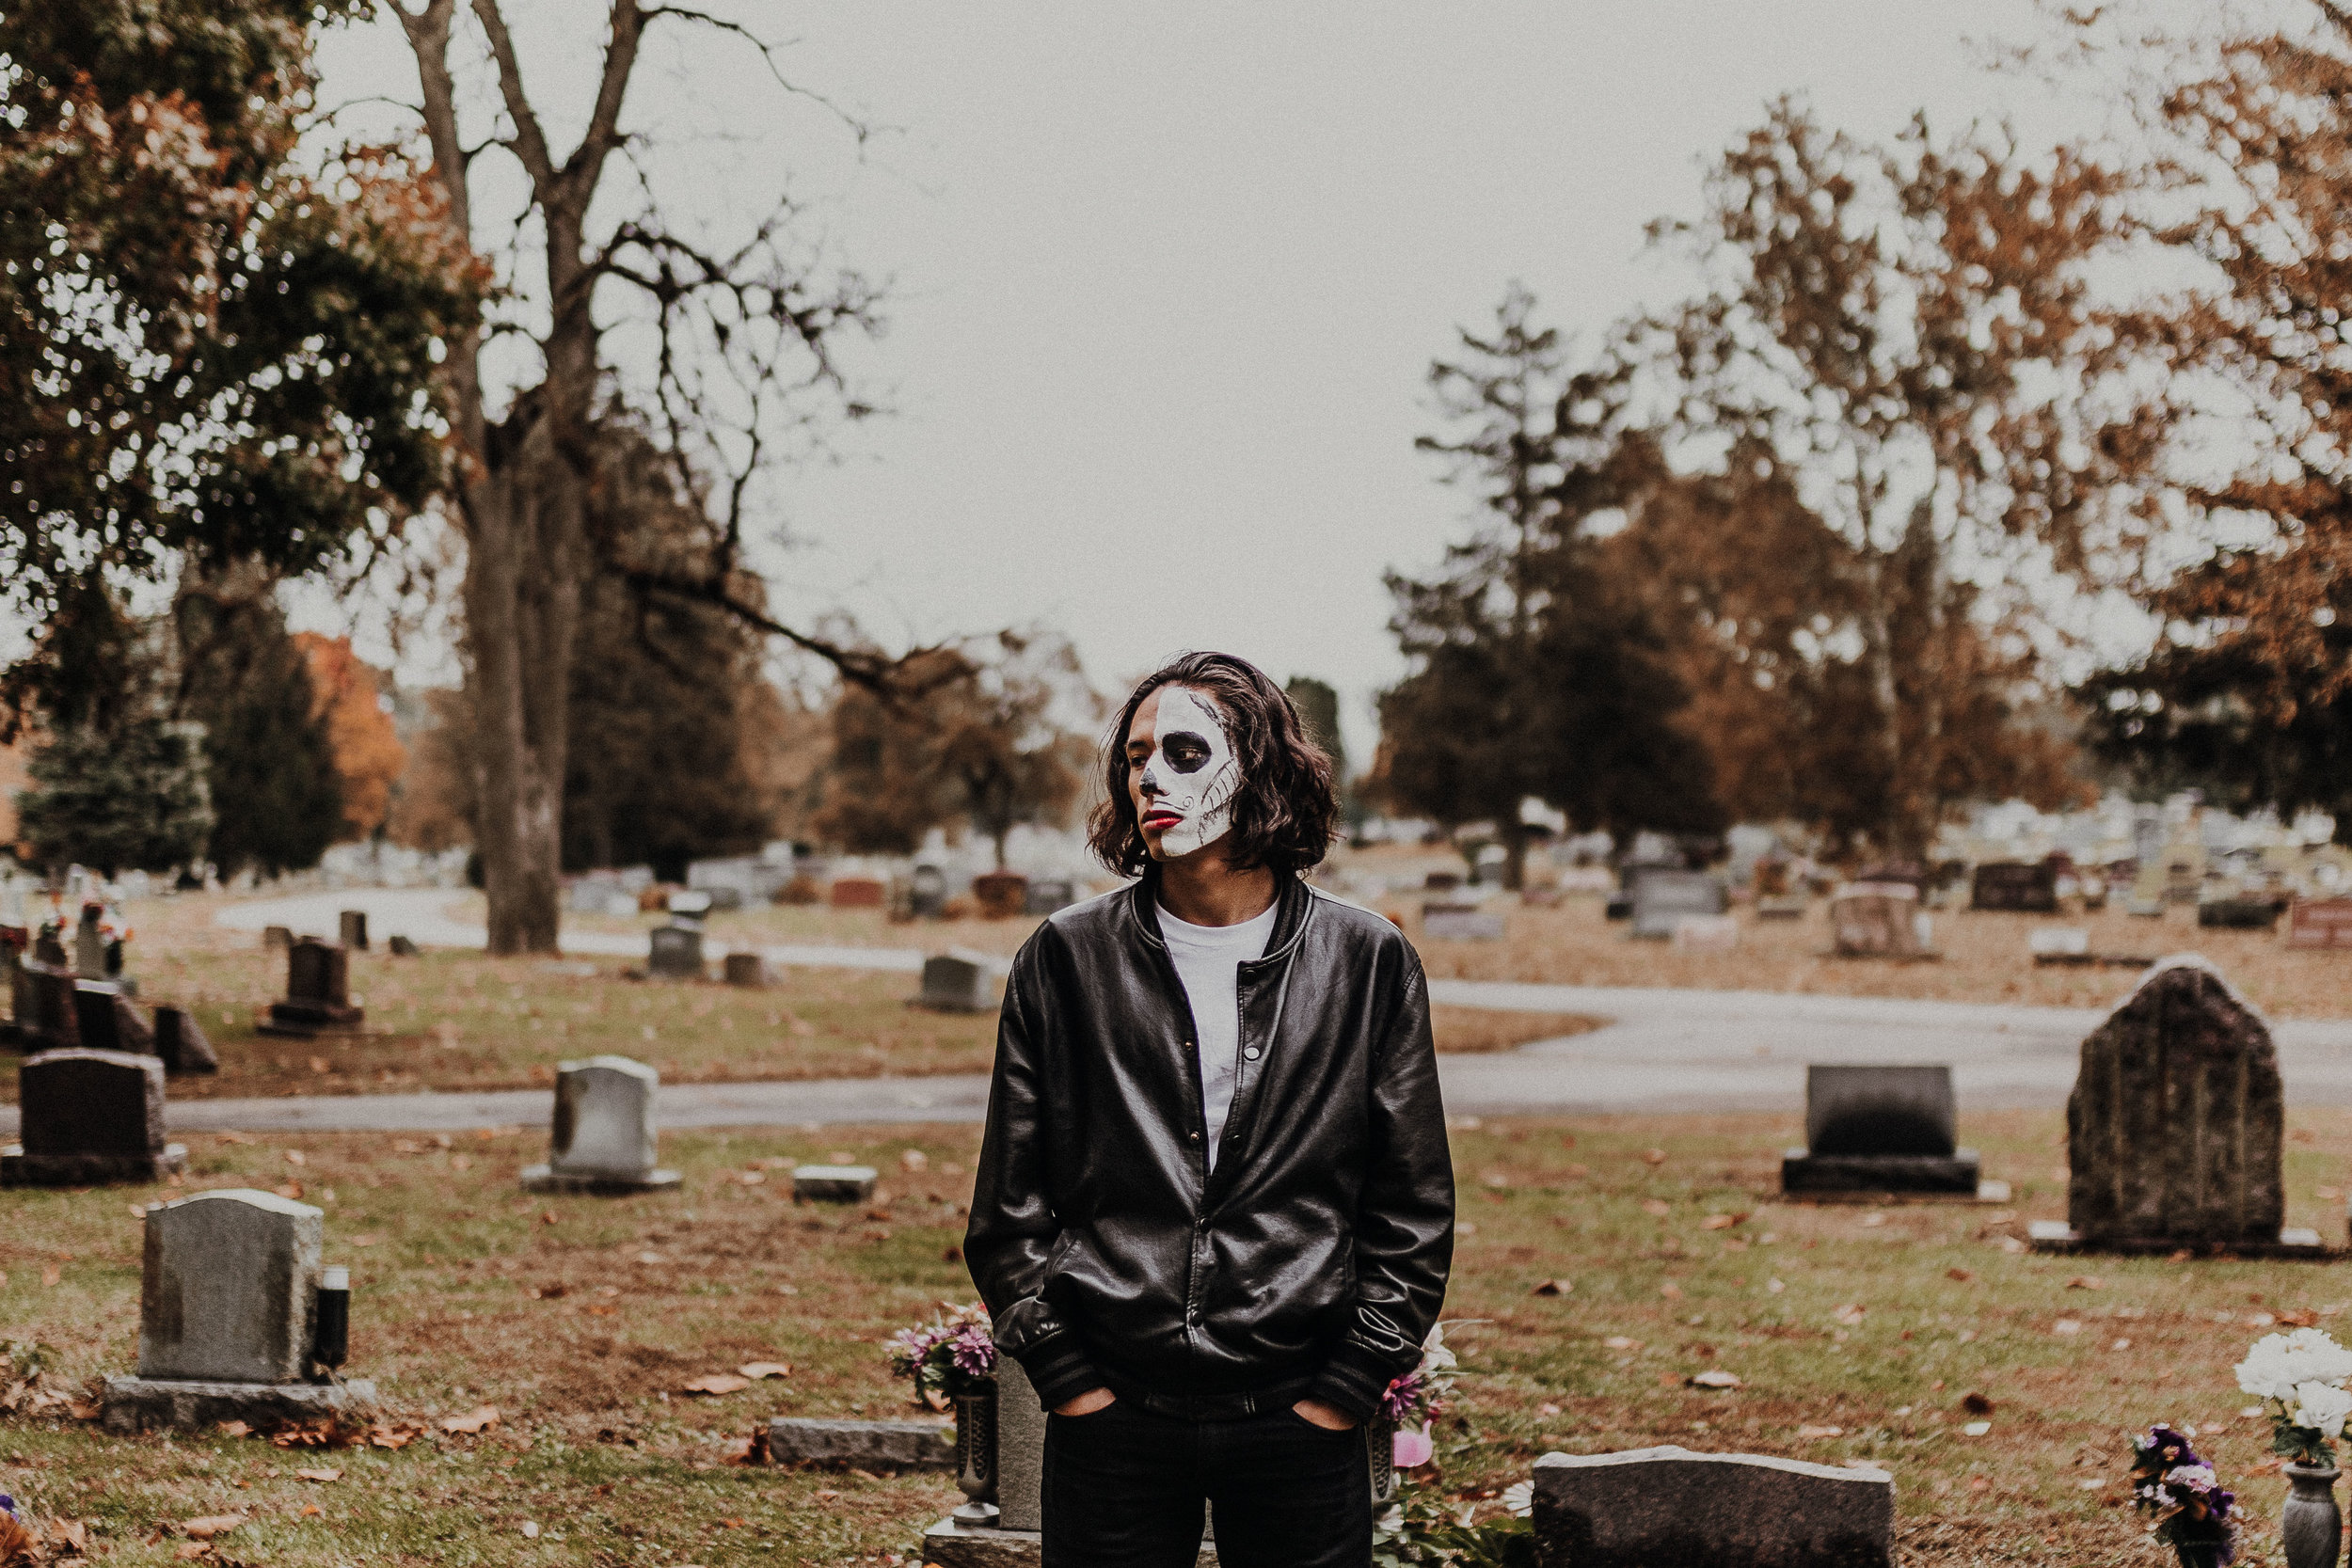 I had the pleasure of helping one of my photographer friends, Stephanie, with this Day of the Dead photoshoot at the beginning of the month. It was cold and rainy, but I'm really glad we got to fit in this session and hope to do another one (with better planning) next year!